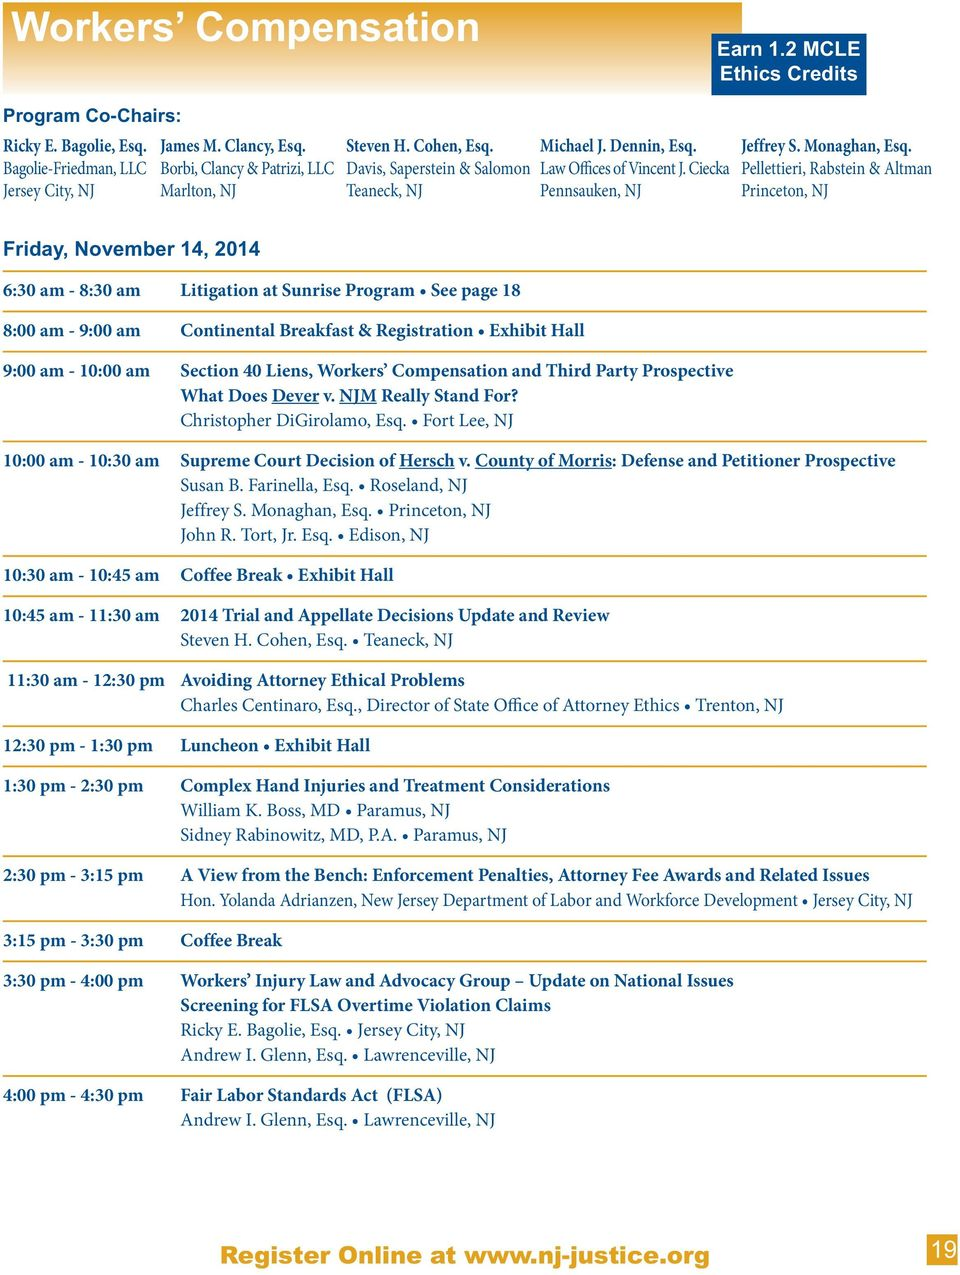 Pellettieri, Rabstein & Altman Princeton, NJ Friday, November 14, 2014 6:30 am - 8:30 am Litigation at Sunrise Program See page 18 8:00 am - 9:00 am Continental Breakfast & Registration Exhibit Hall